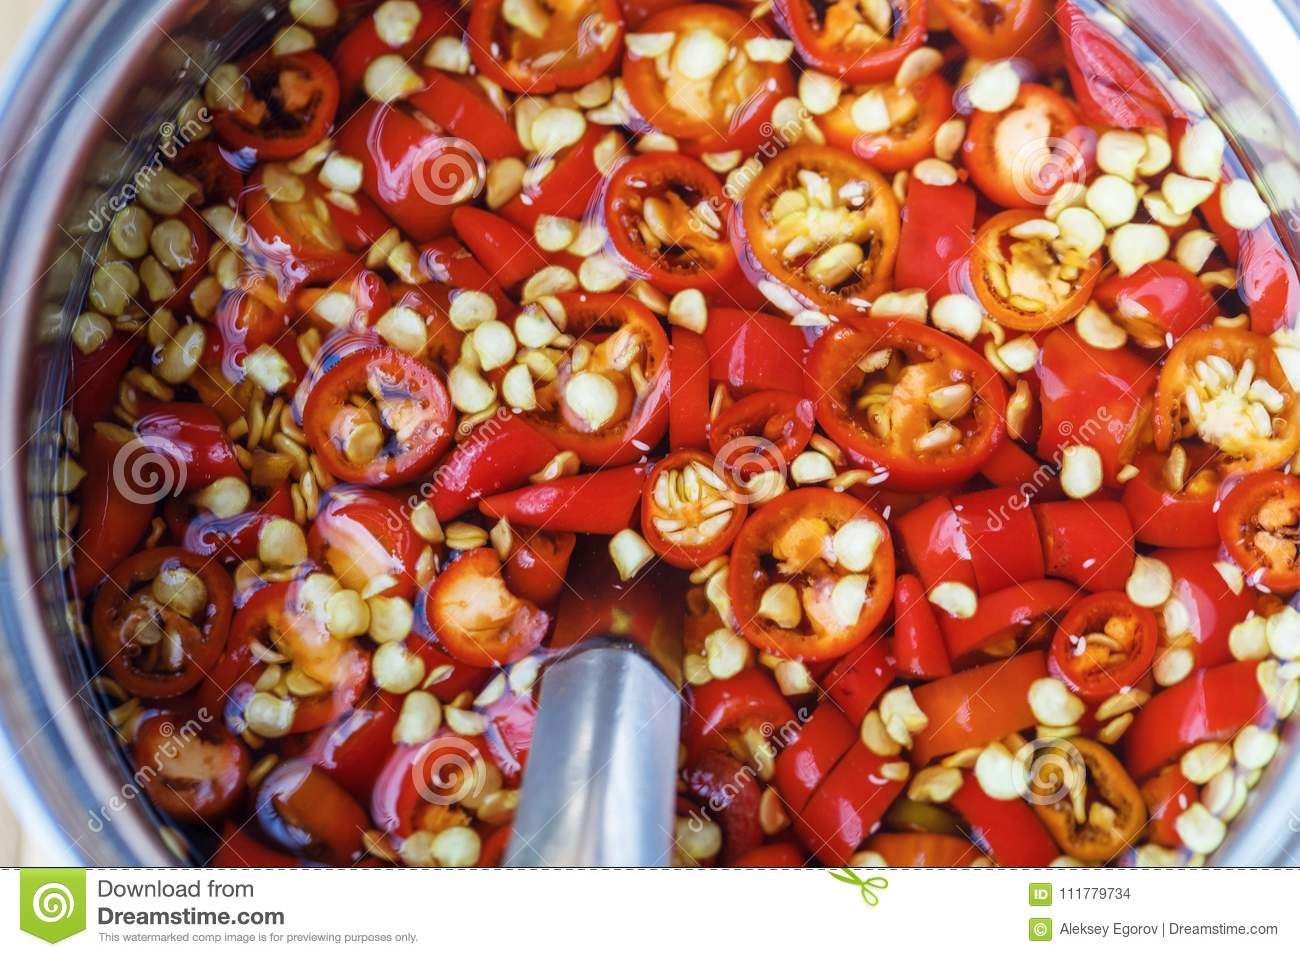 Sauce of red chili pepper